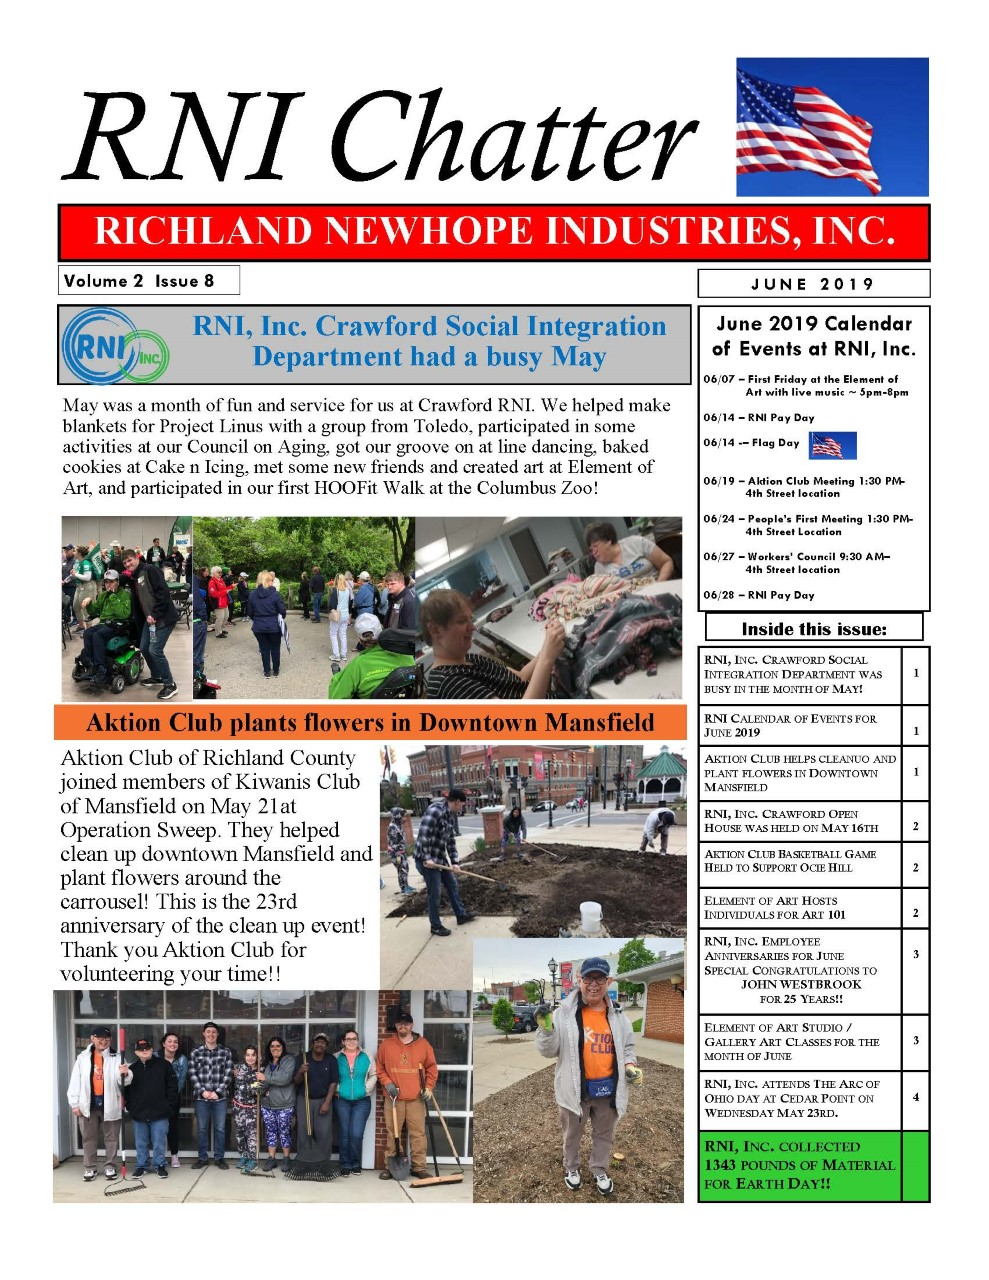 RNI Chatter: June 2019 Edition